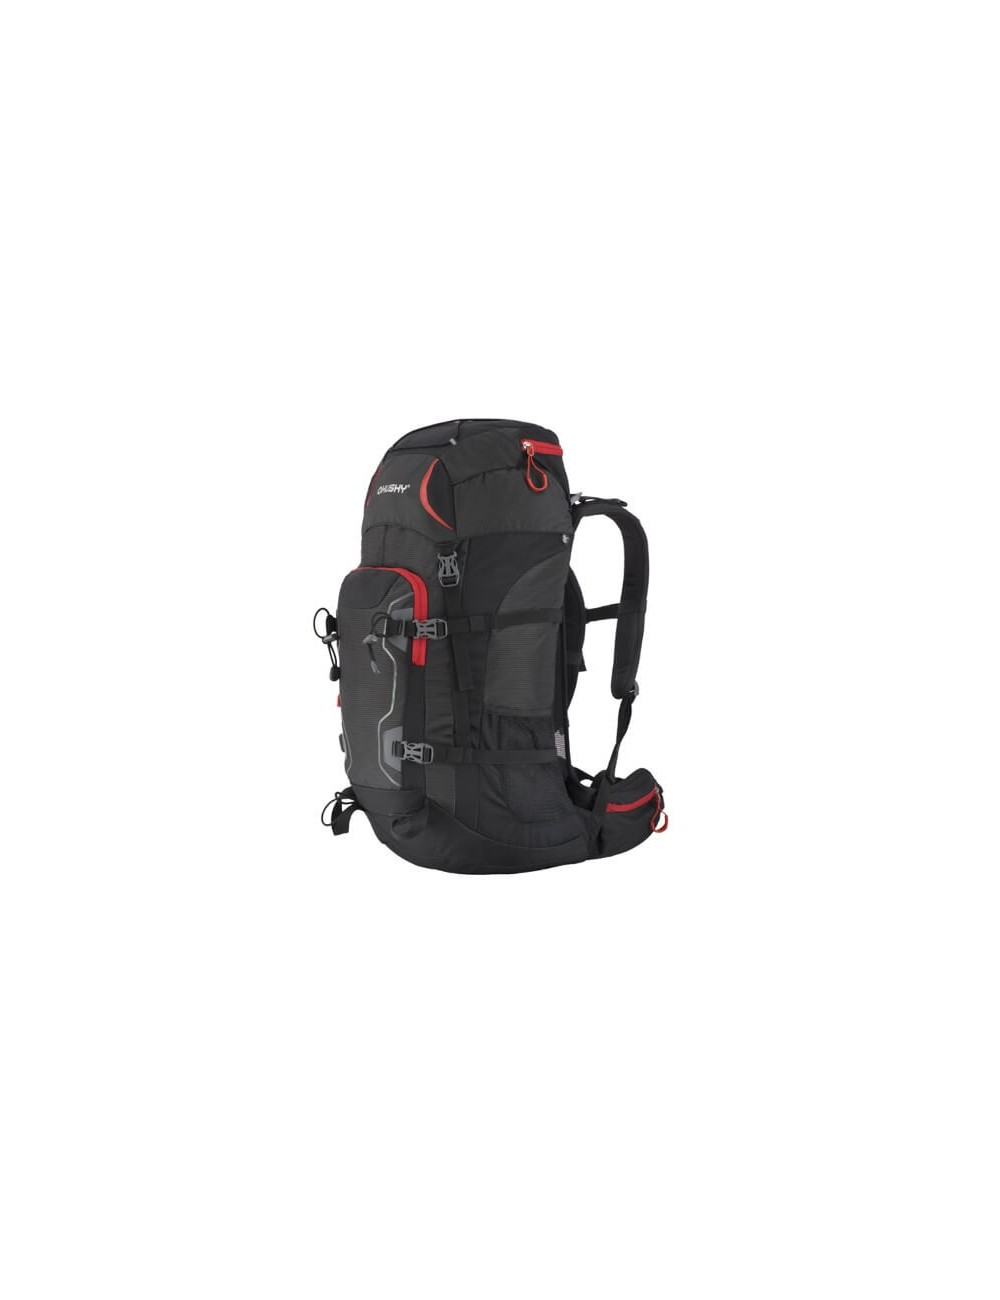 Husky rugzak Expedition Sloper 45 liter - Zwart